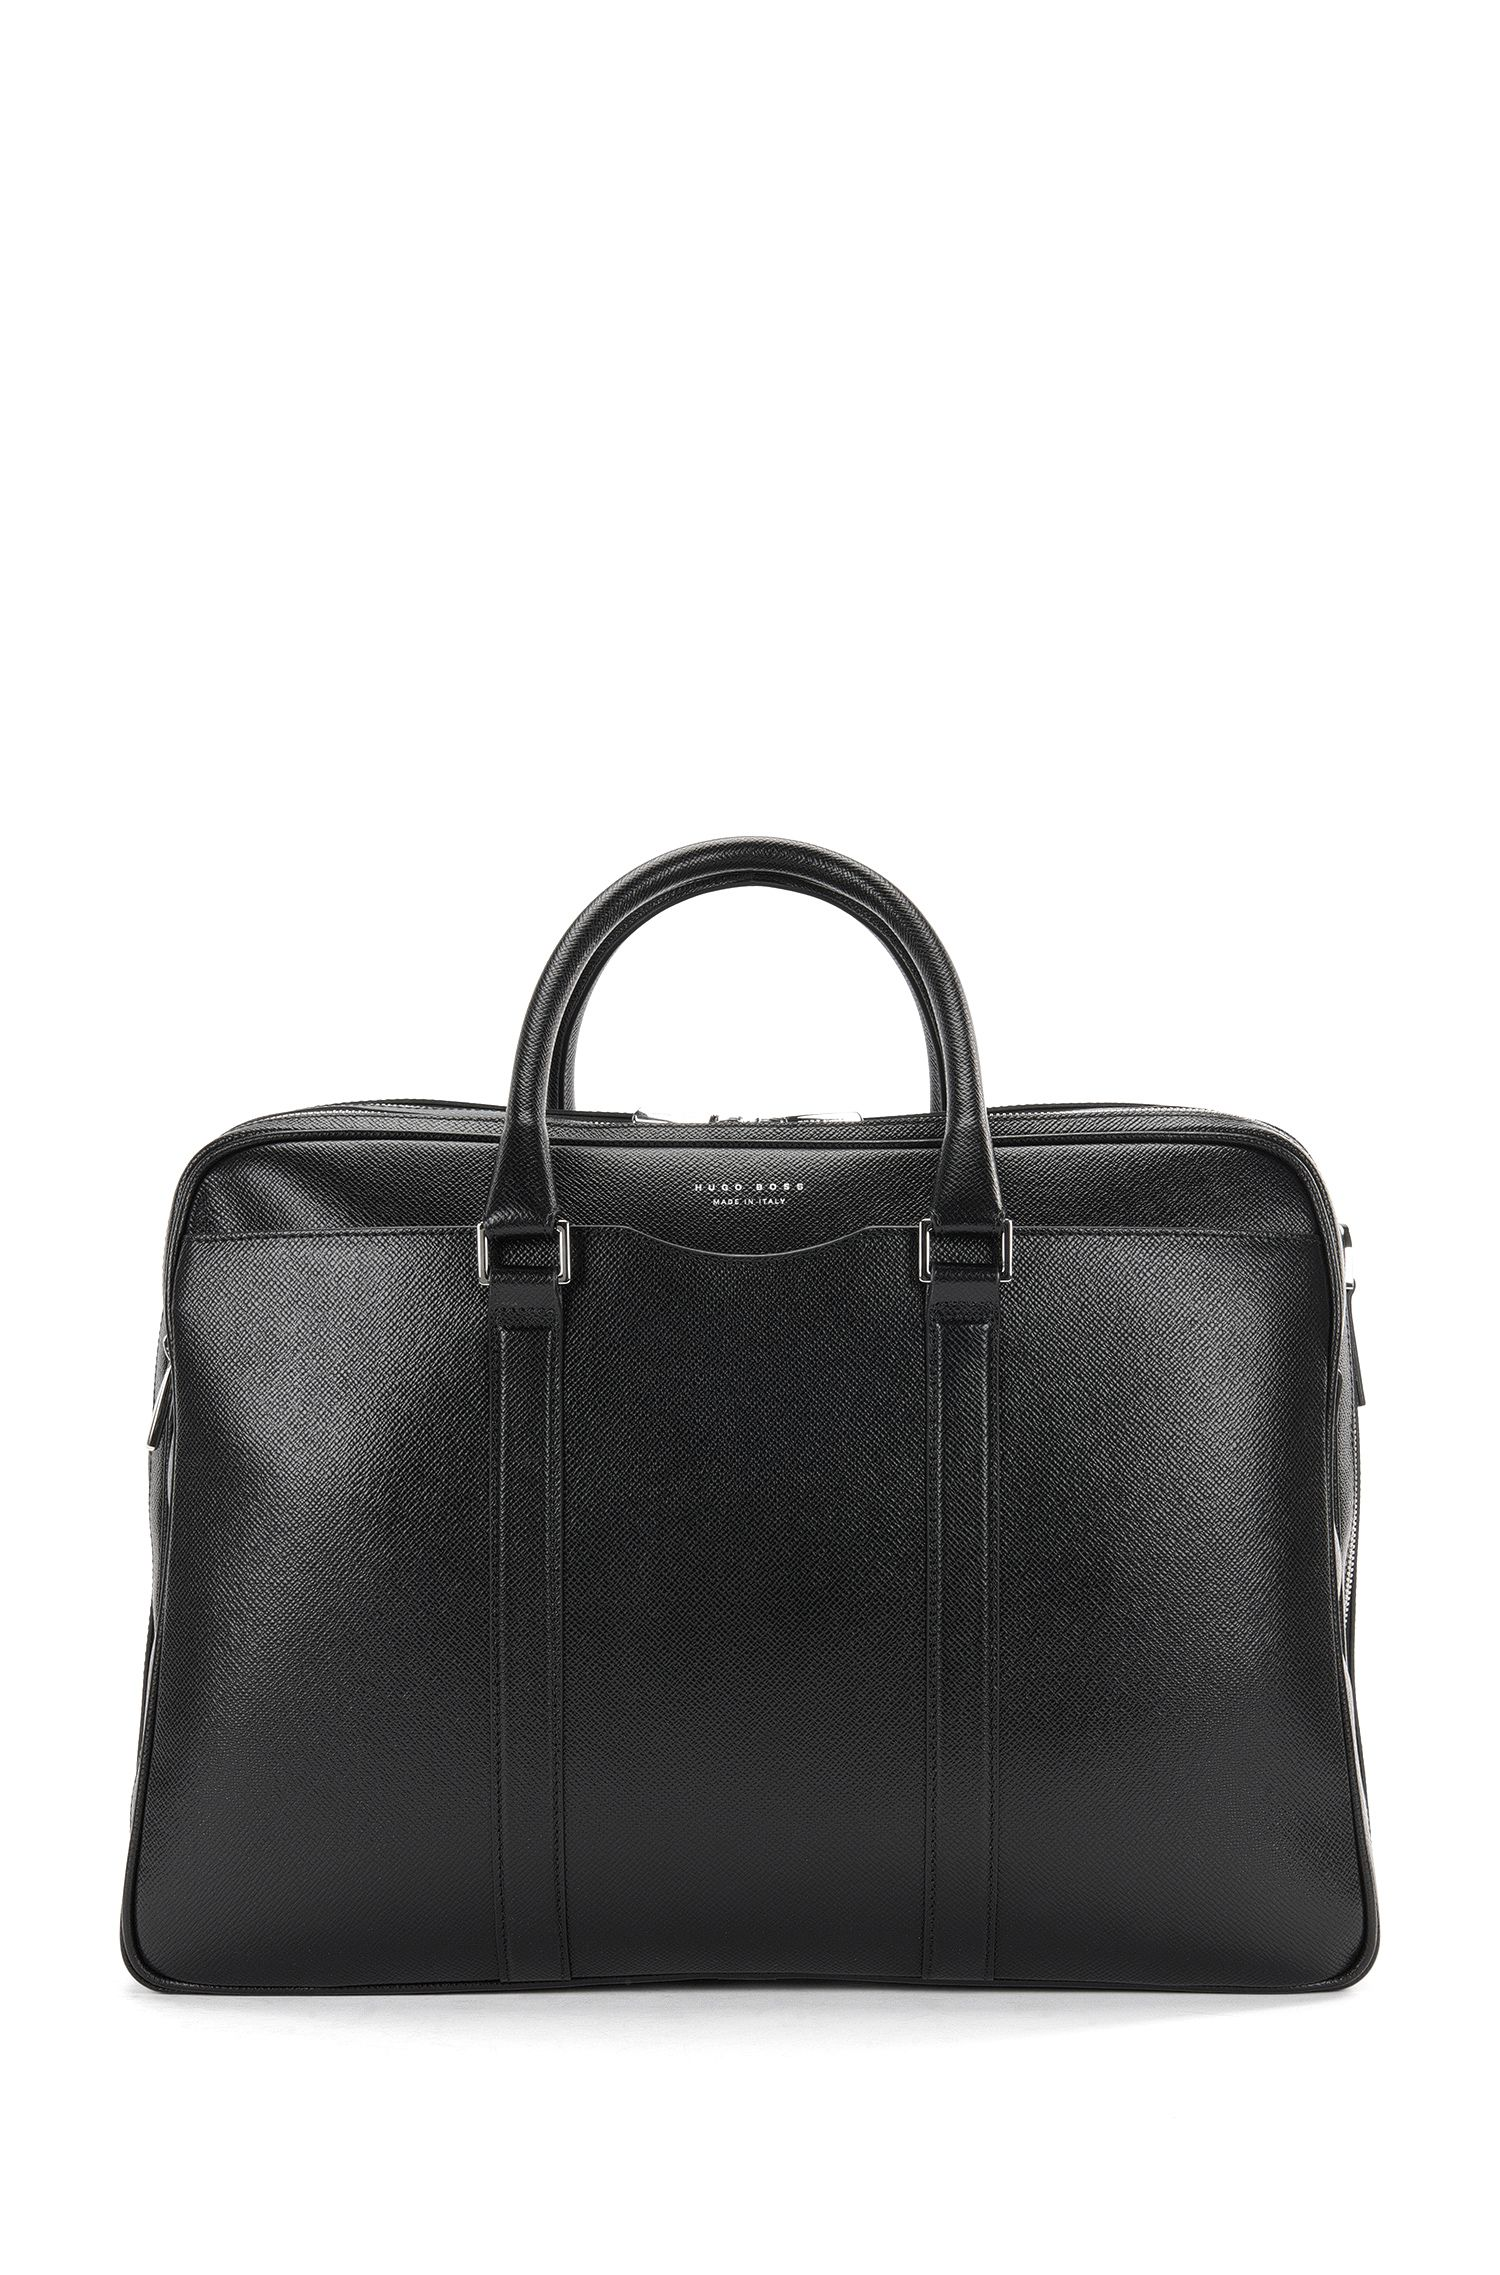 Leather weekender bag with the main compartment divided into 2: 'Signature_Holdall'